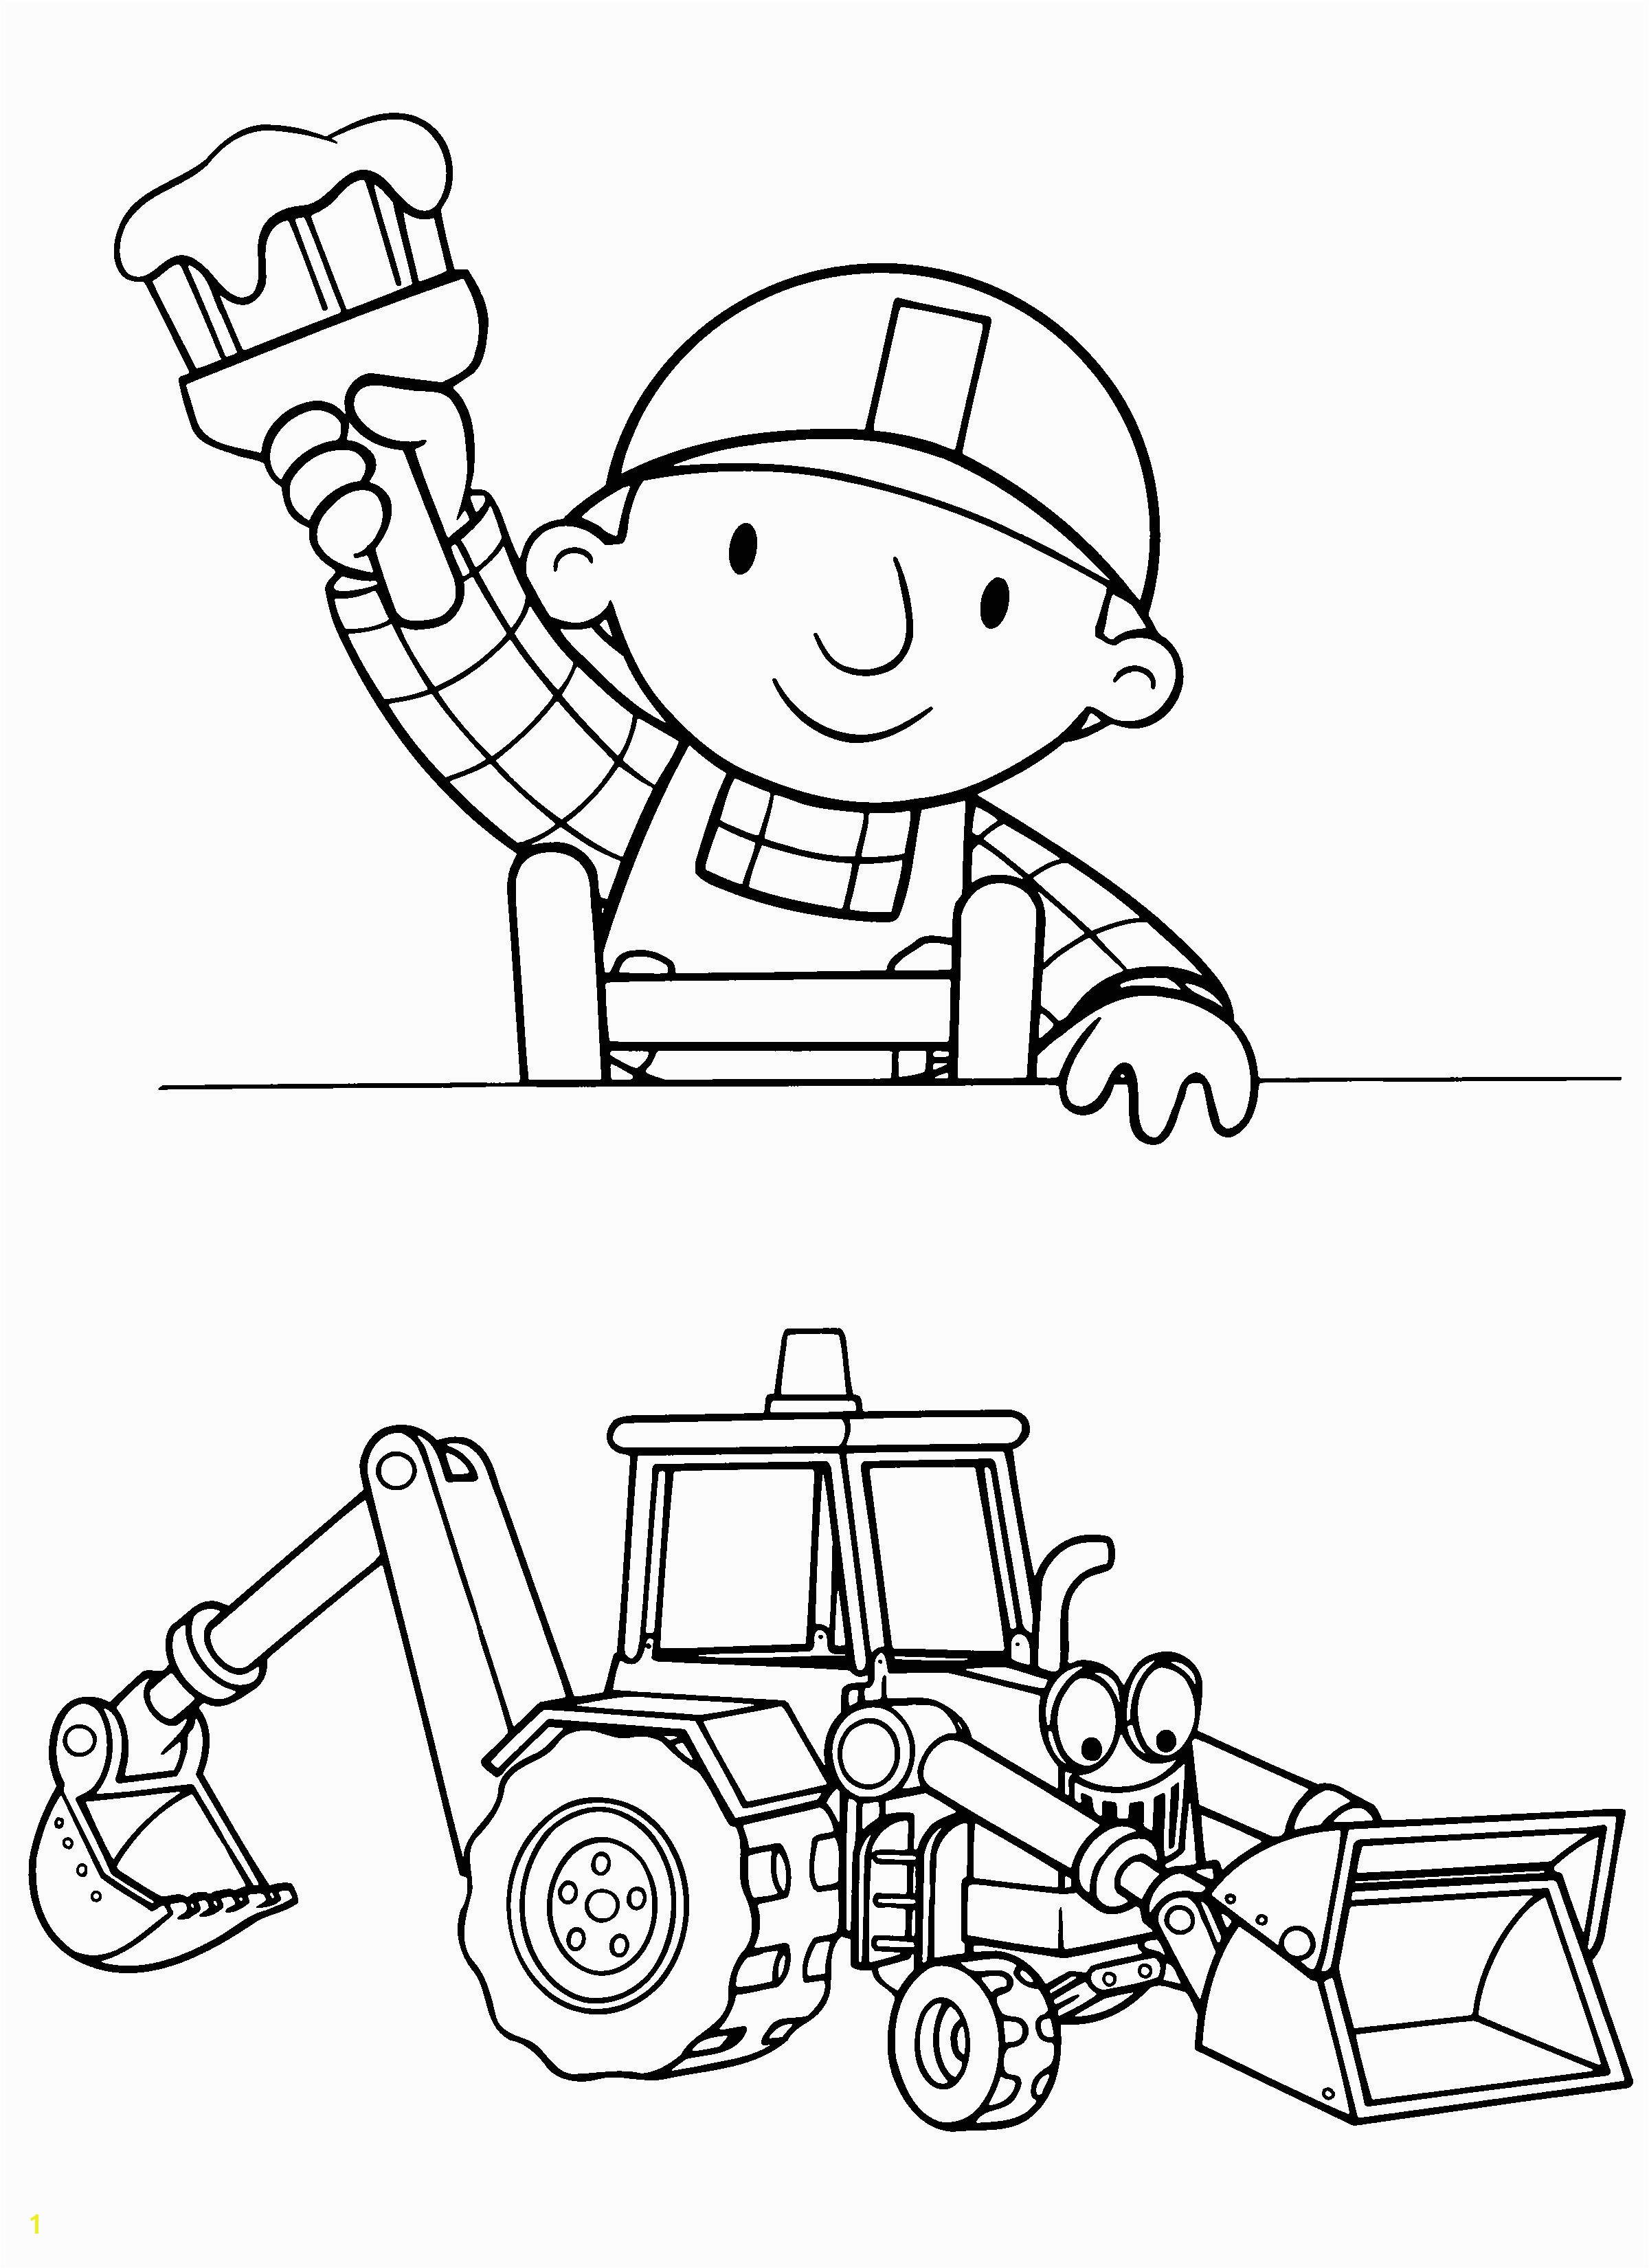 Bridge to Terabithia Coloring Pages New Fresh 50 Beautiful Collection Bob the Builder Coloring Pages Collection